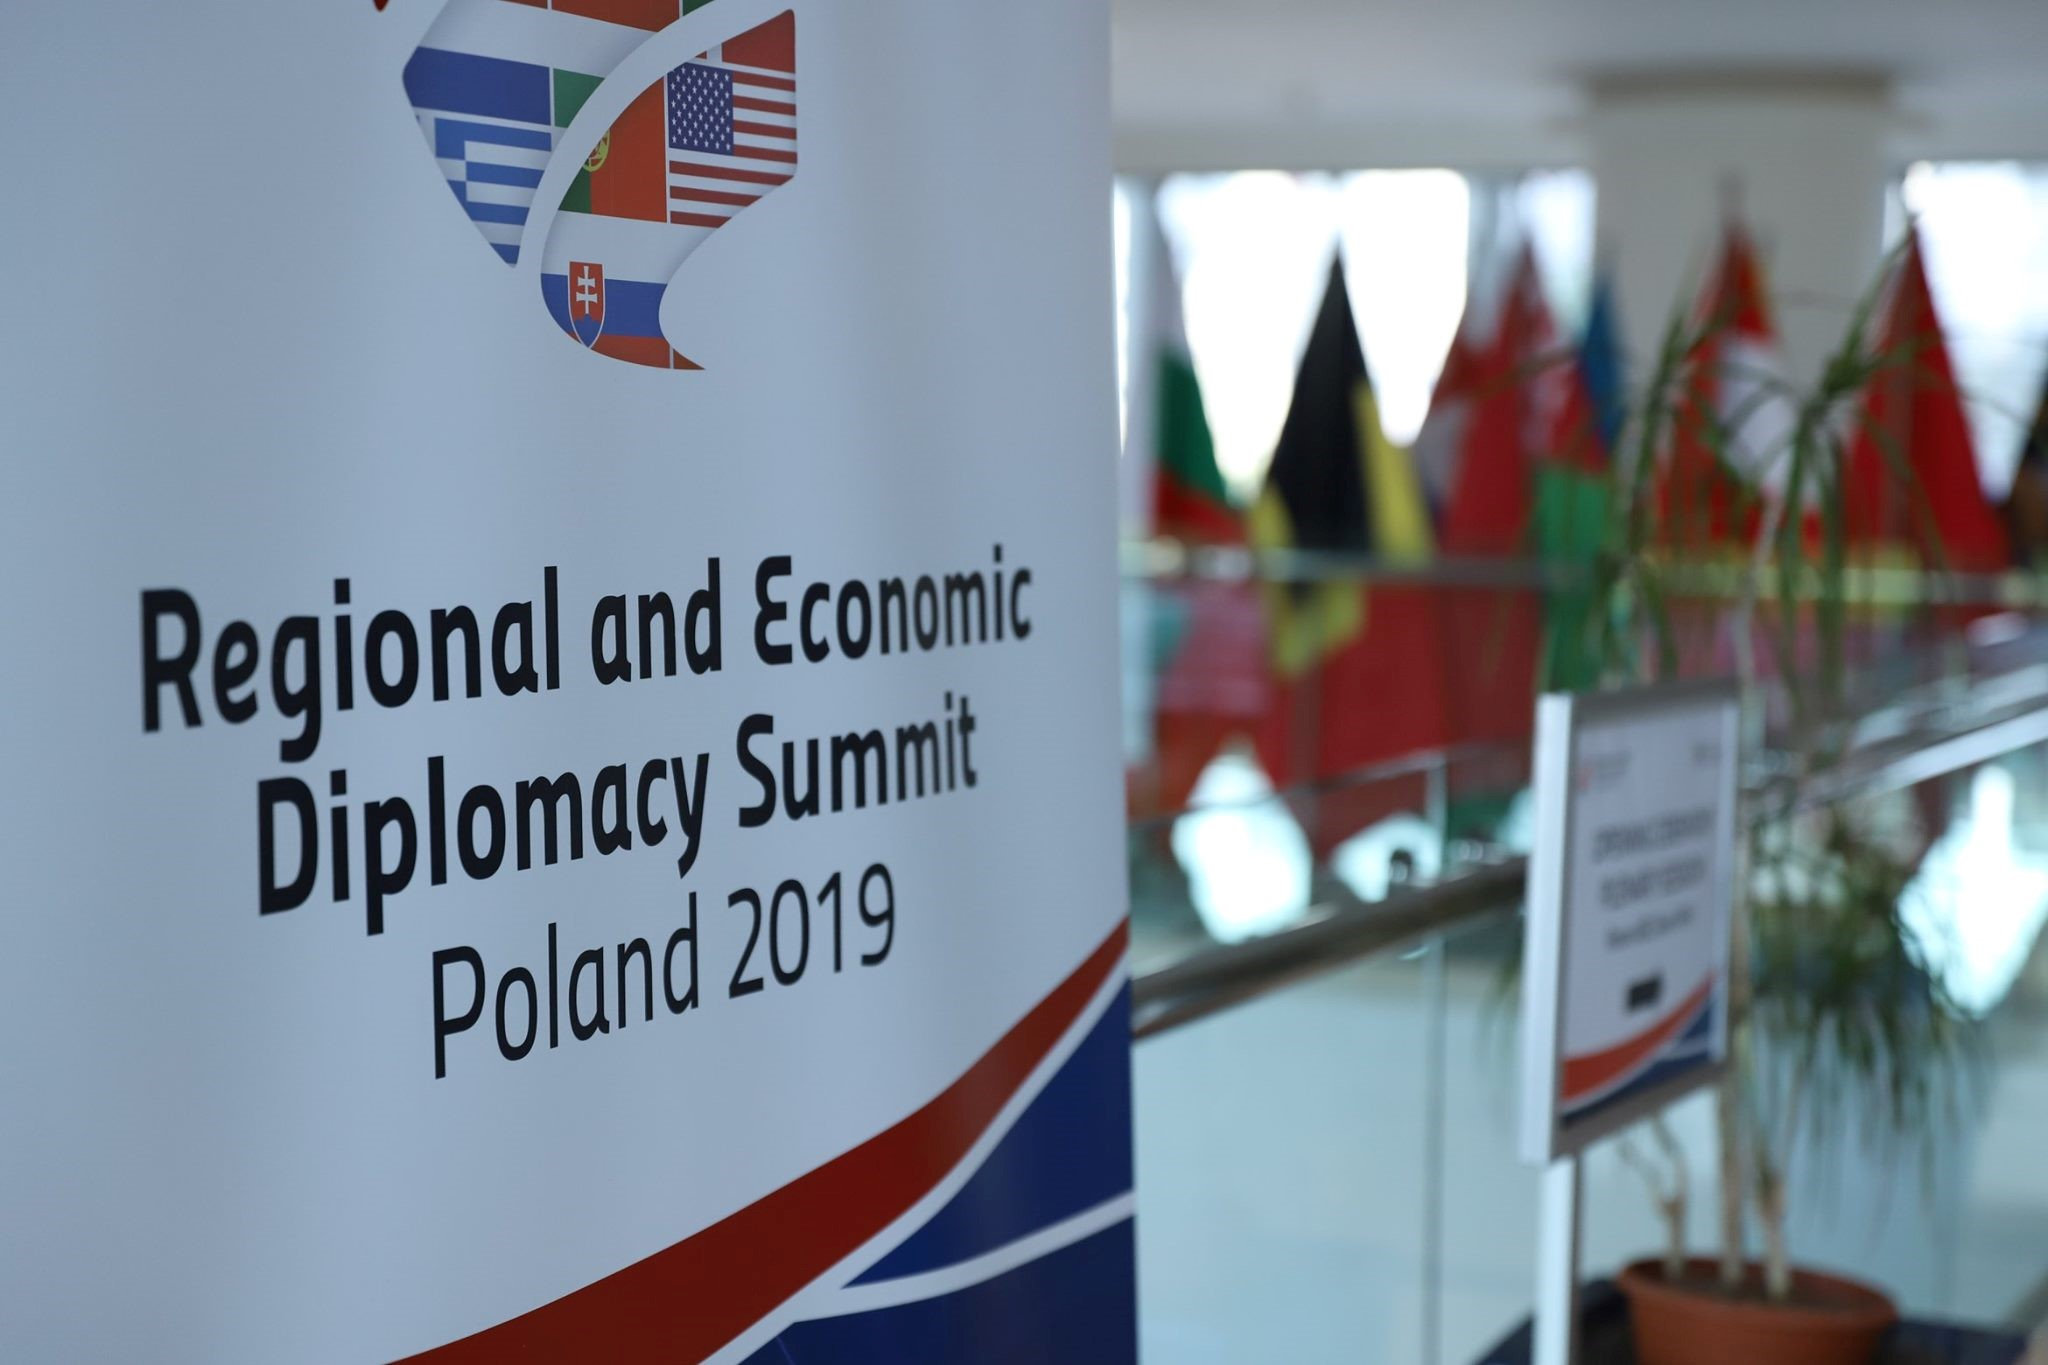 Regional and Economic Diplomacy Summit 2019